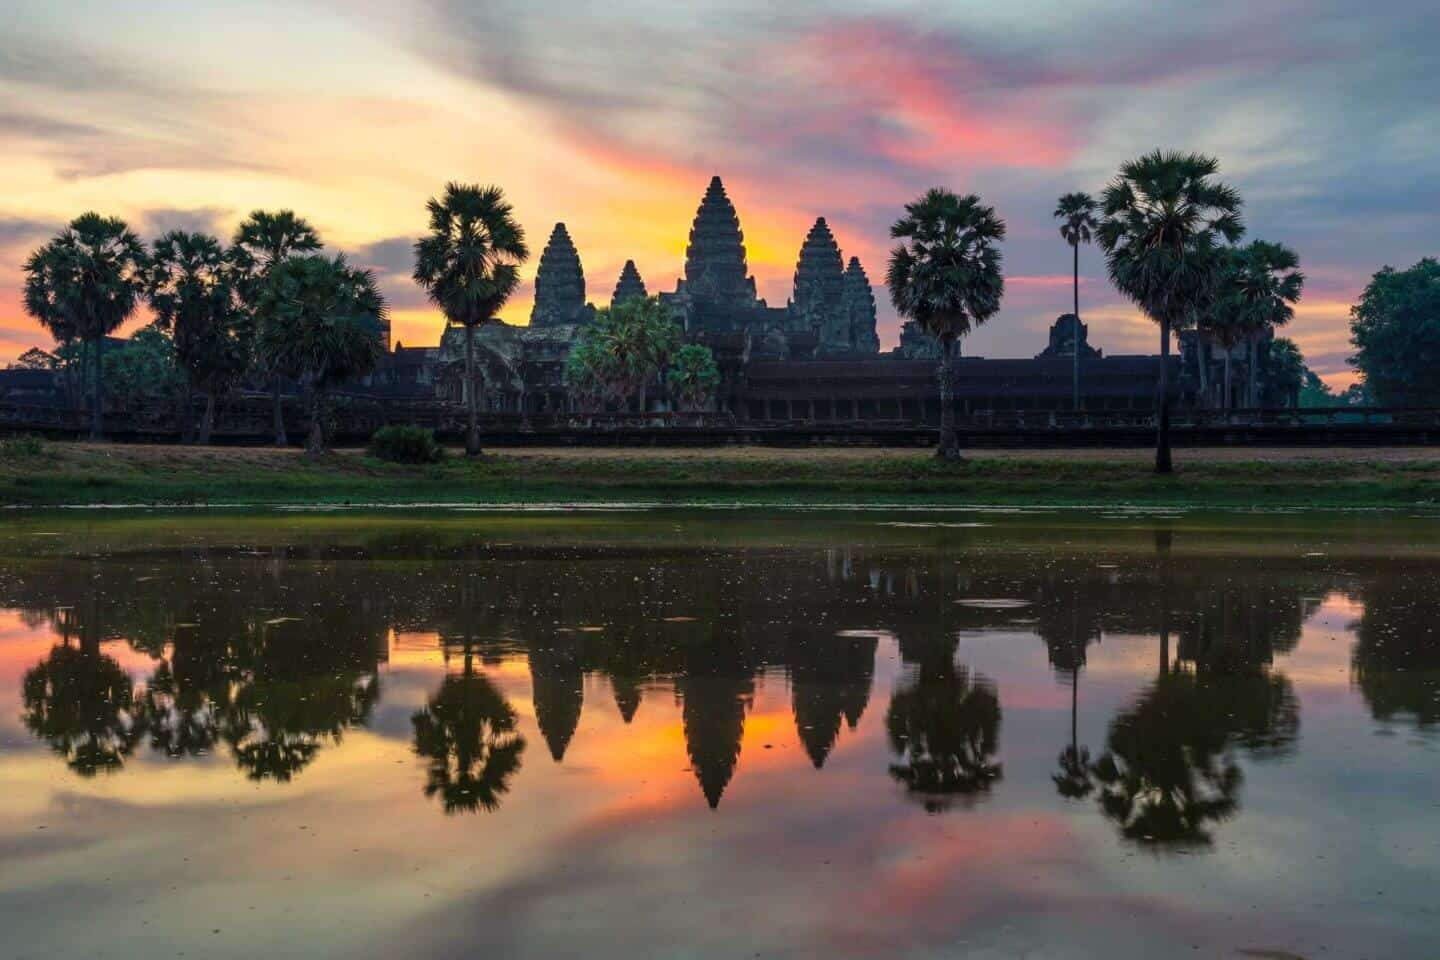 A photo of Angor Wat Temple at sunrise reflected in water.